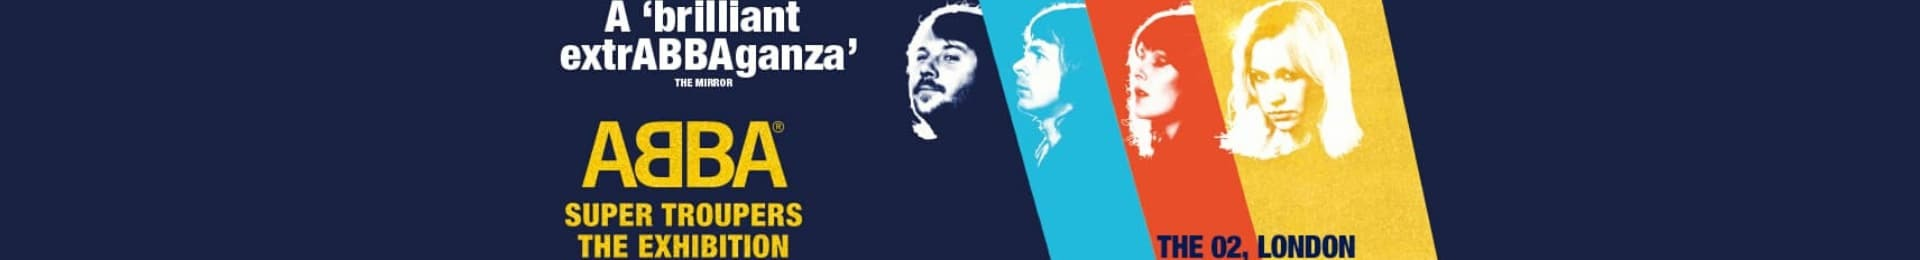 Abba Super Troupers - header